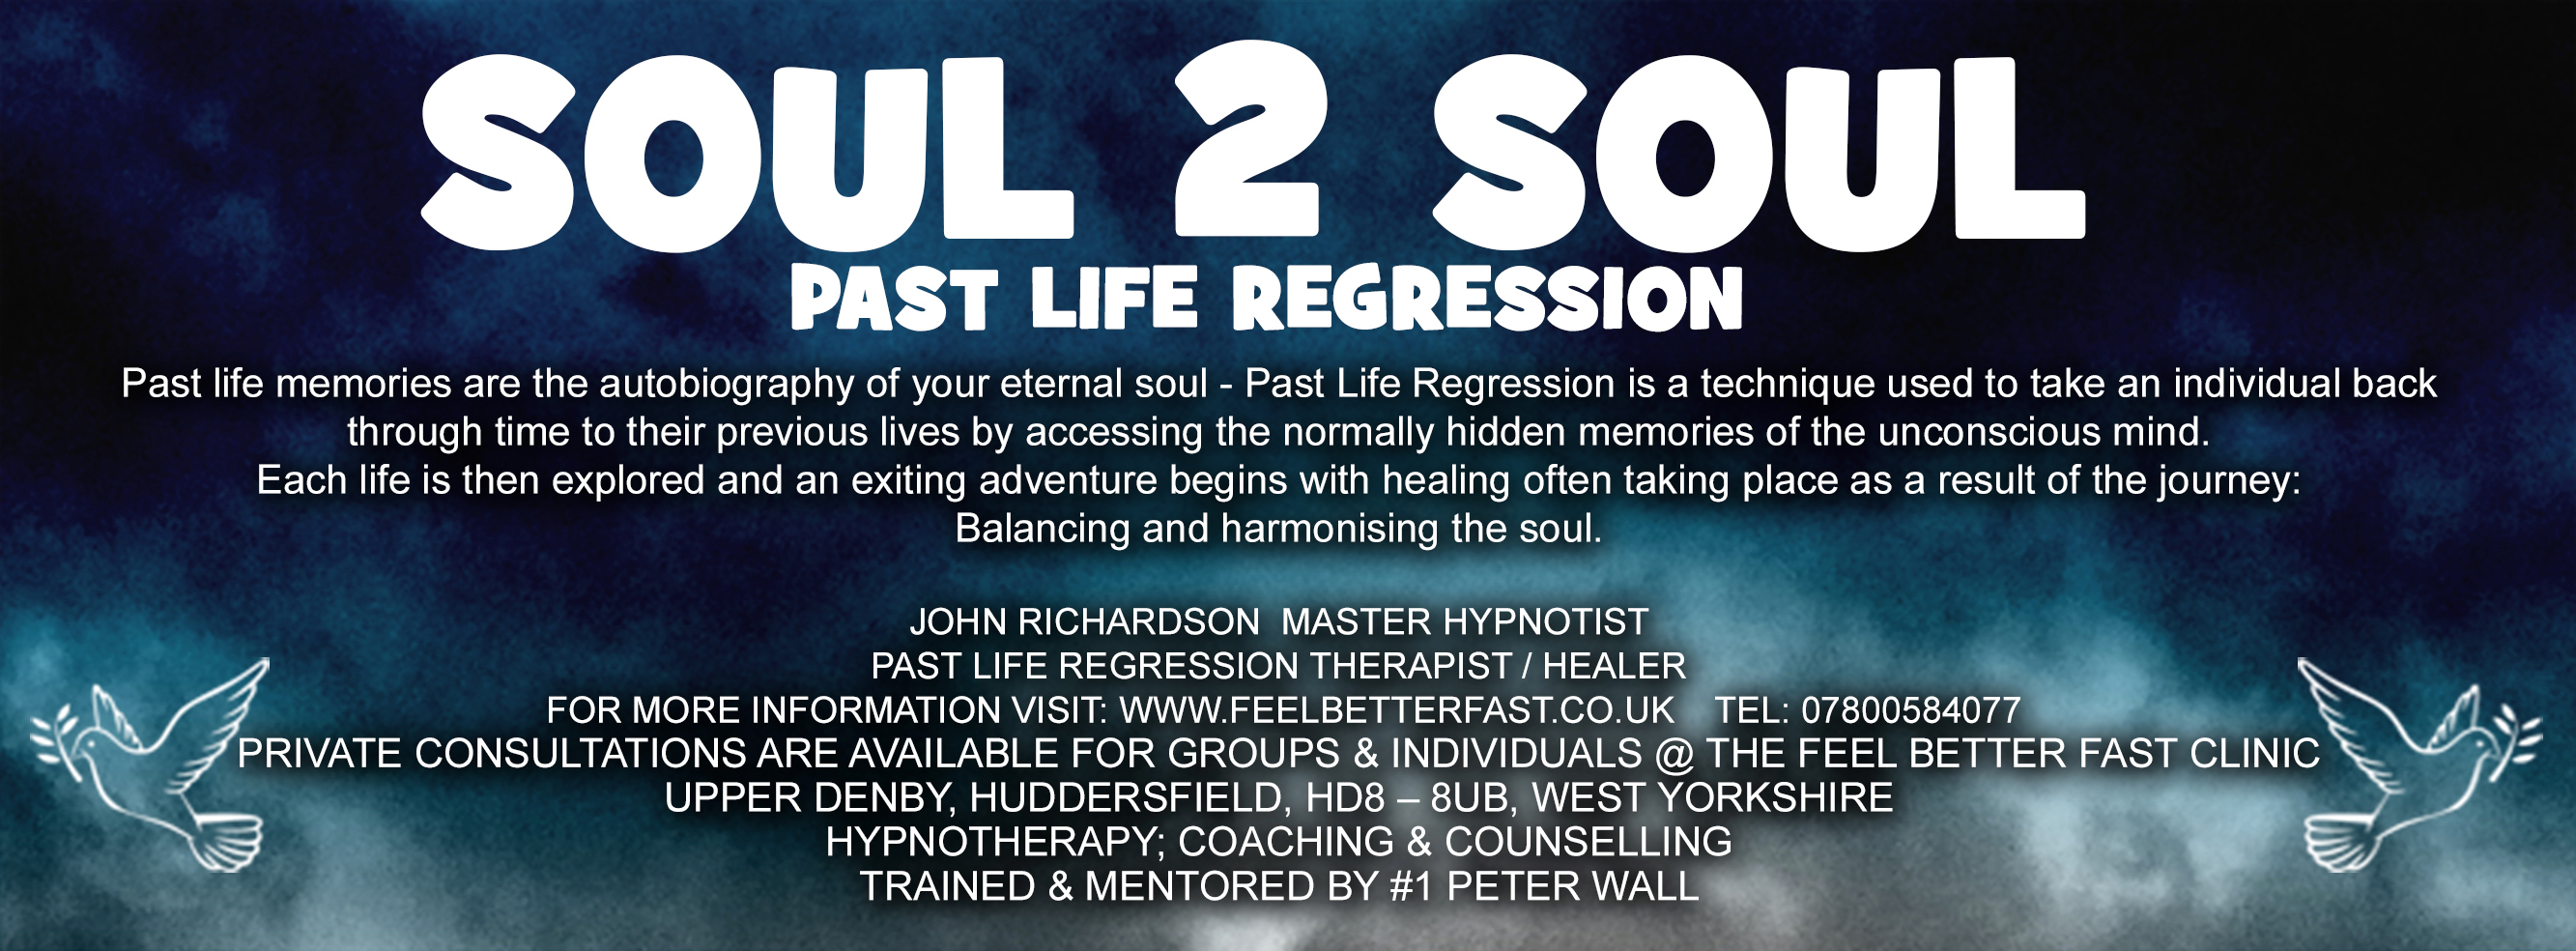 PAST LIFE REGRESSION LEAFLET J. Richardson